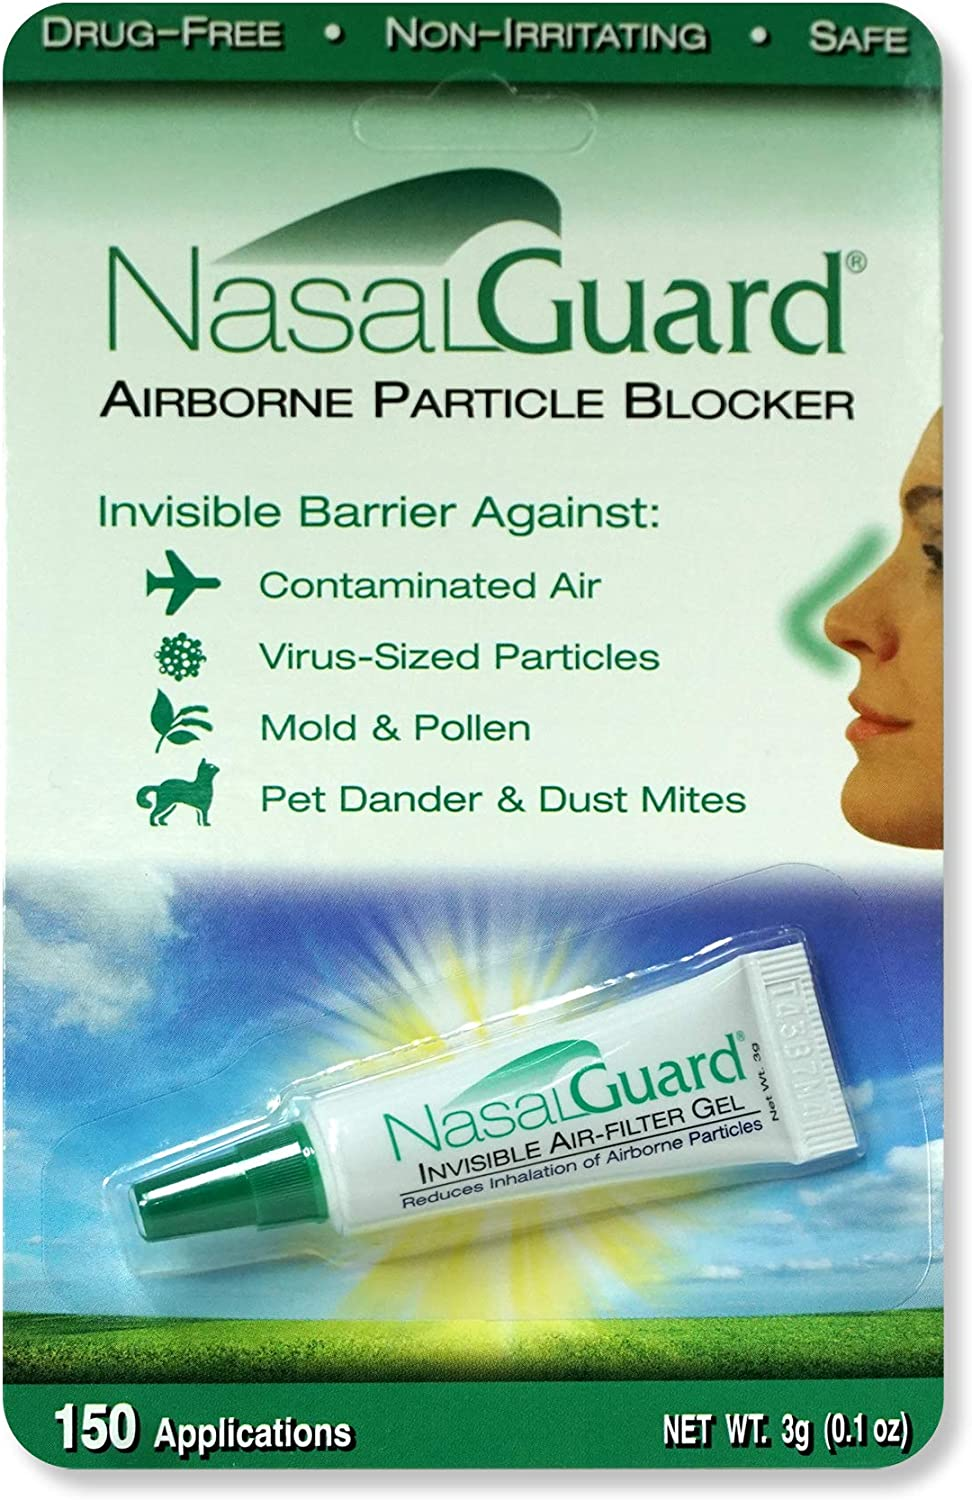 NASALGUARD Allergy Relief and Allergen Blocker Nasal Gel - Drug-Free and Proven Safe for Pollen Allergy Sufferers, Approved for Adults and Children - Over 150 Applications Per Tube